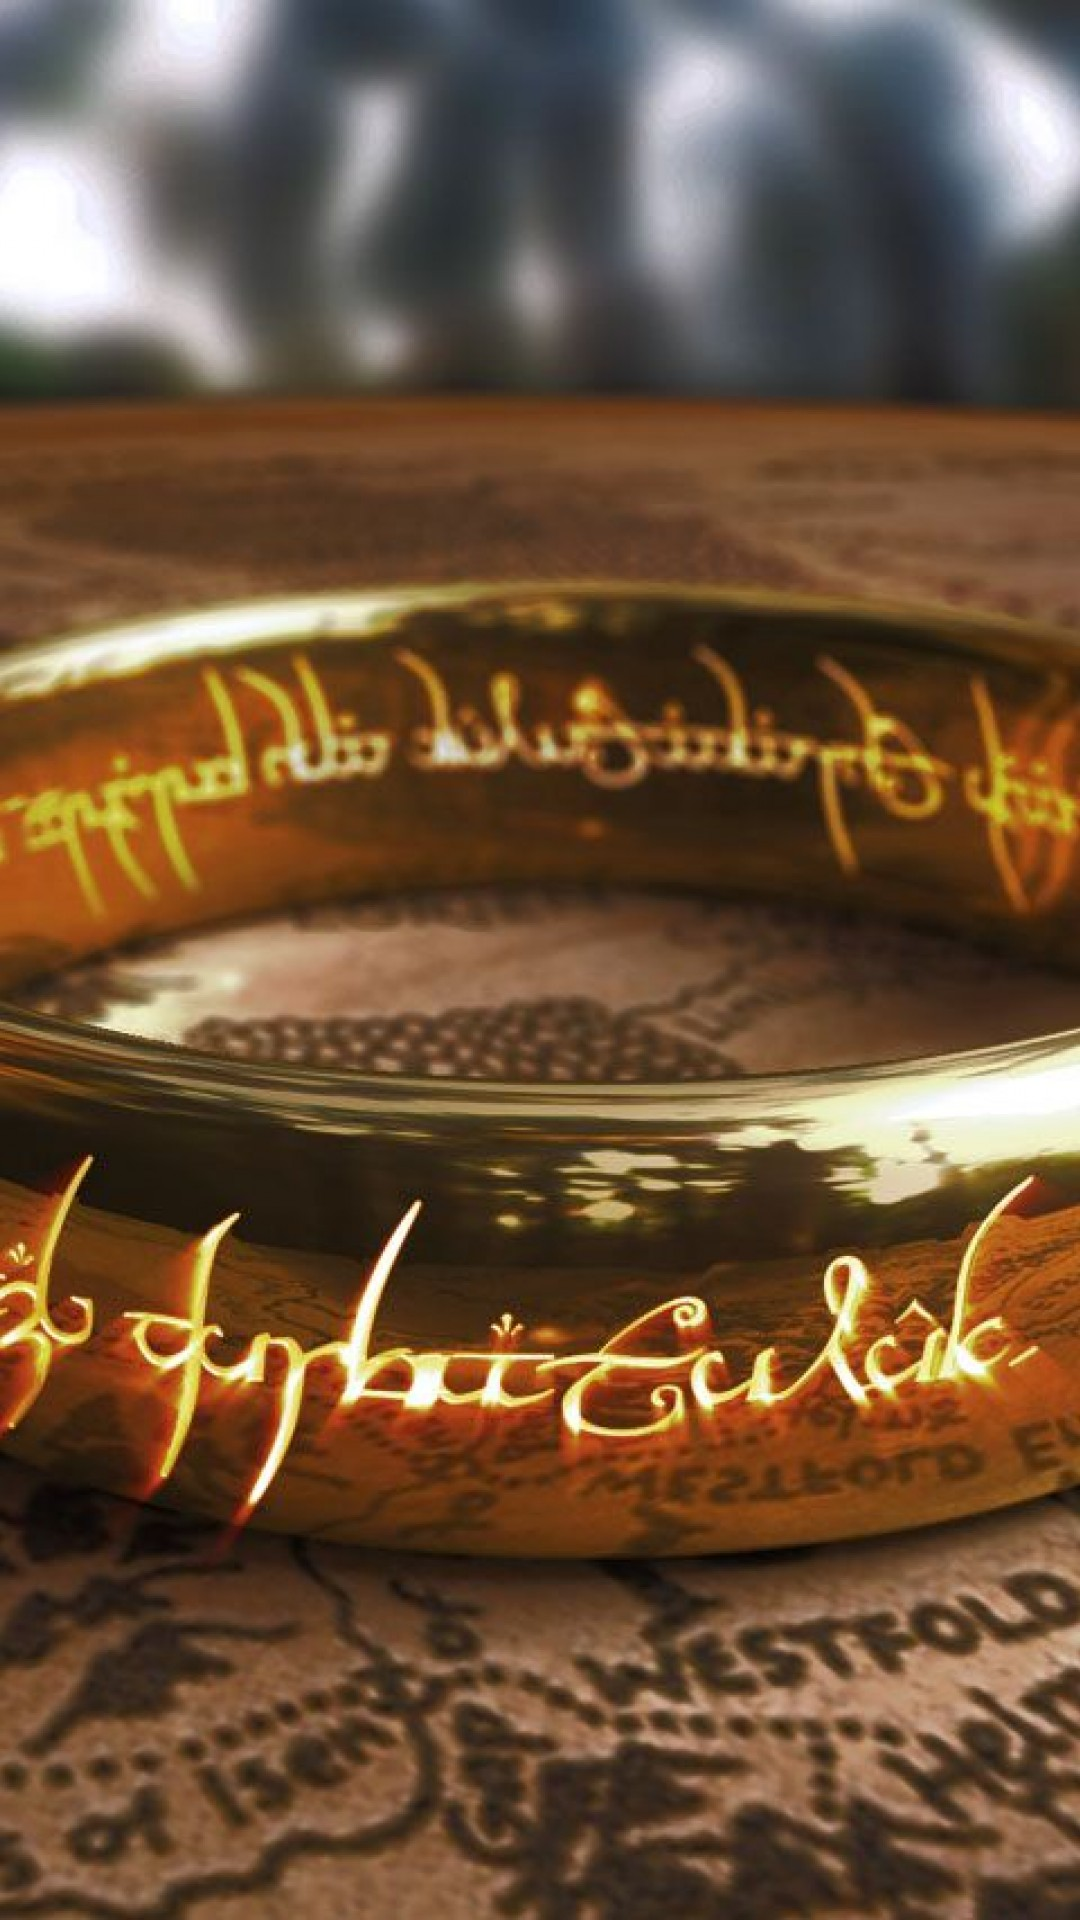 Lord Of The Rings Hd Wallpaper For Desktop And Mobiles Iphone 6